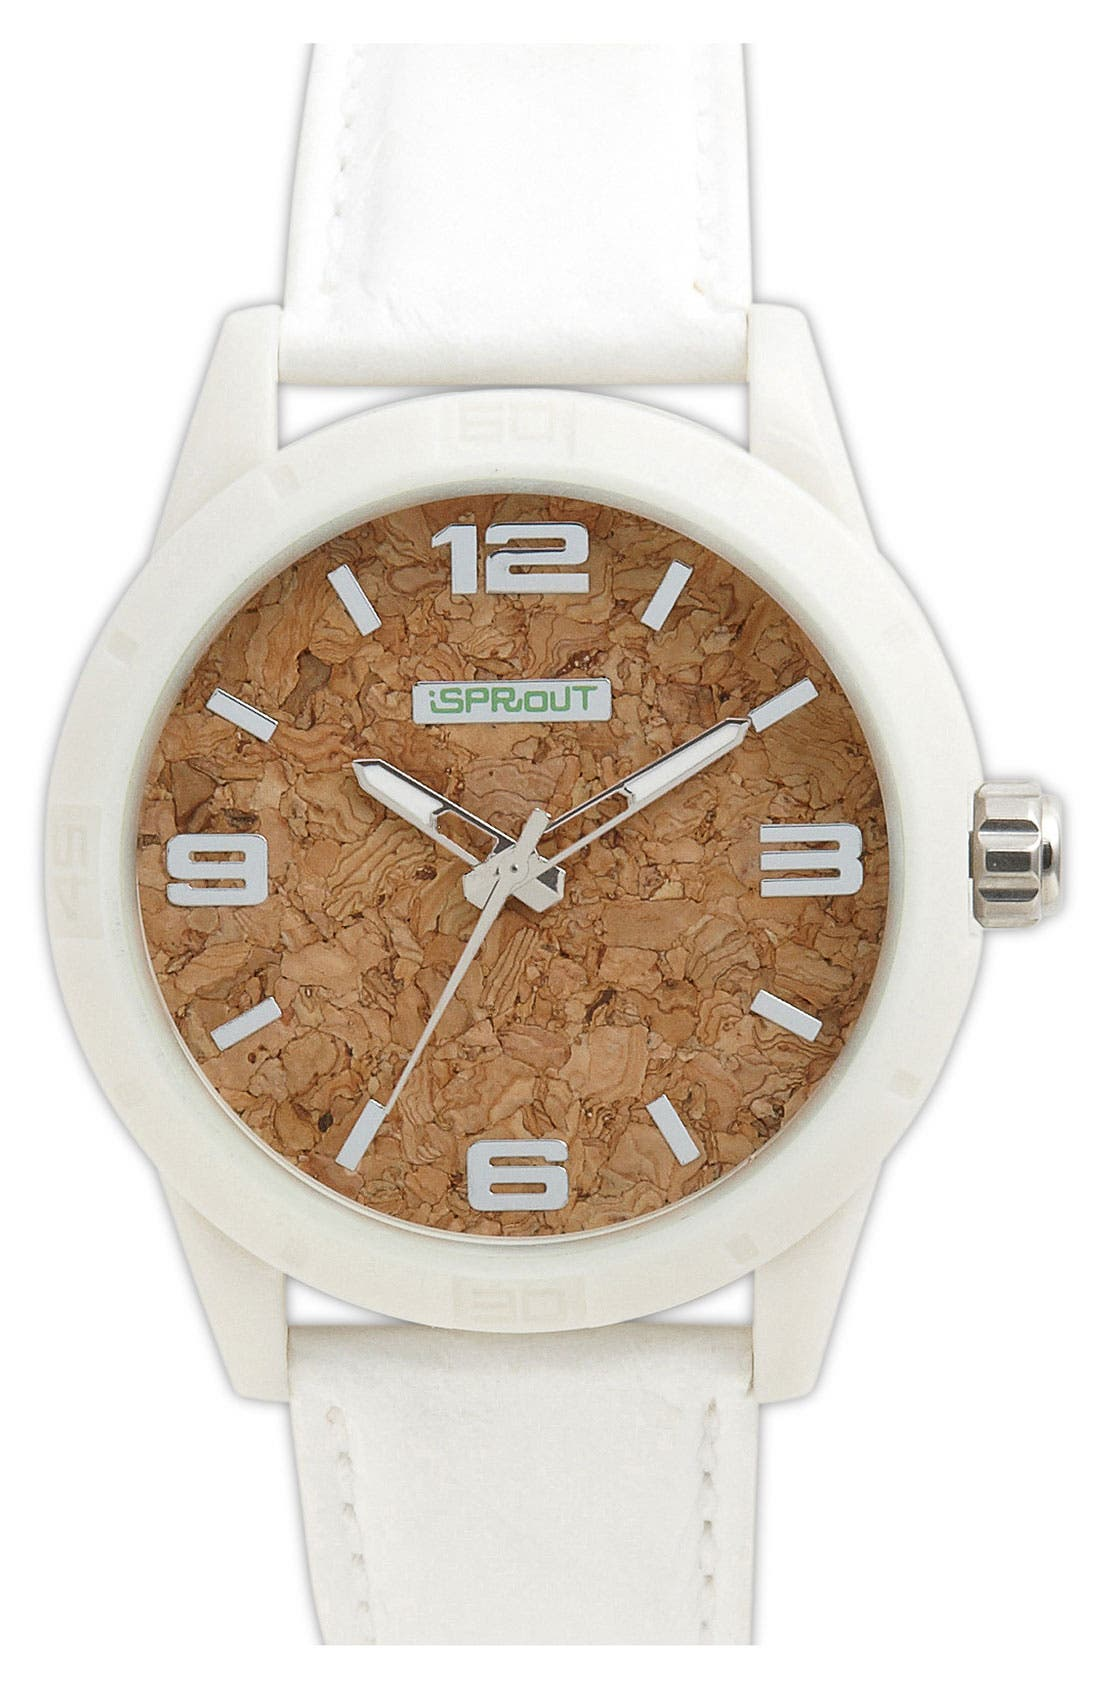 Main Image - SPROUT™ Watches Cork Dial Watch, 45mm